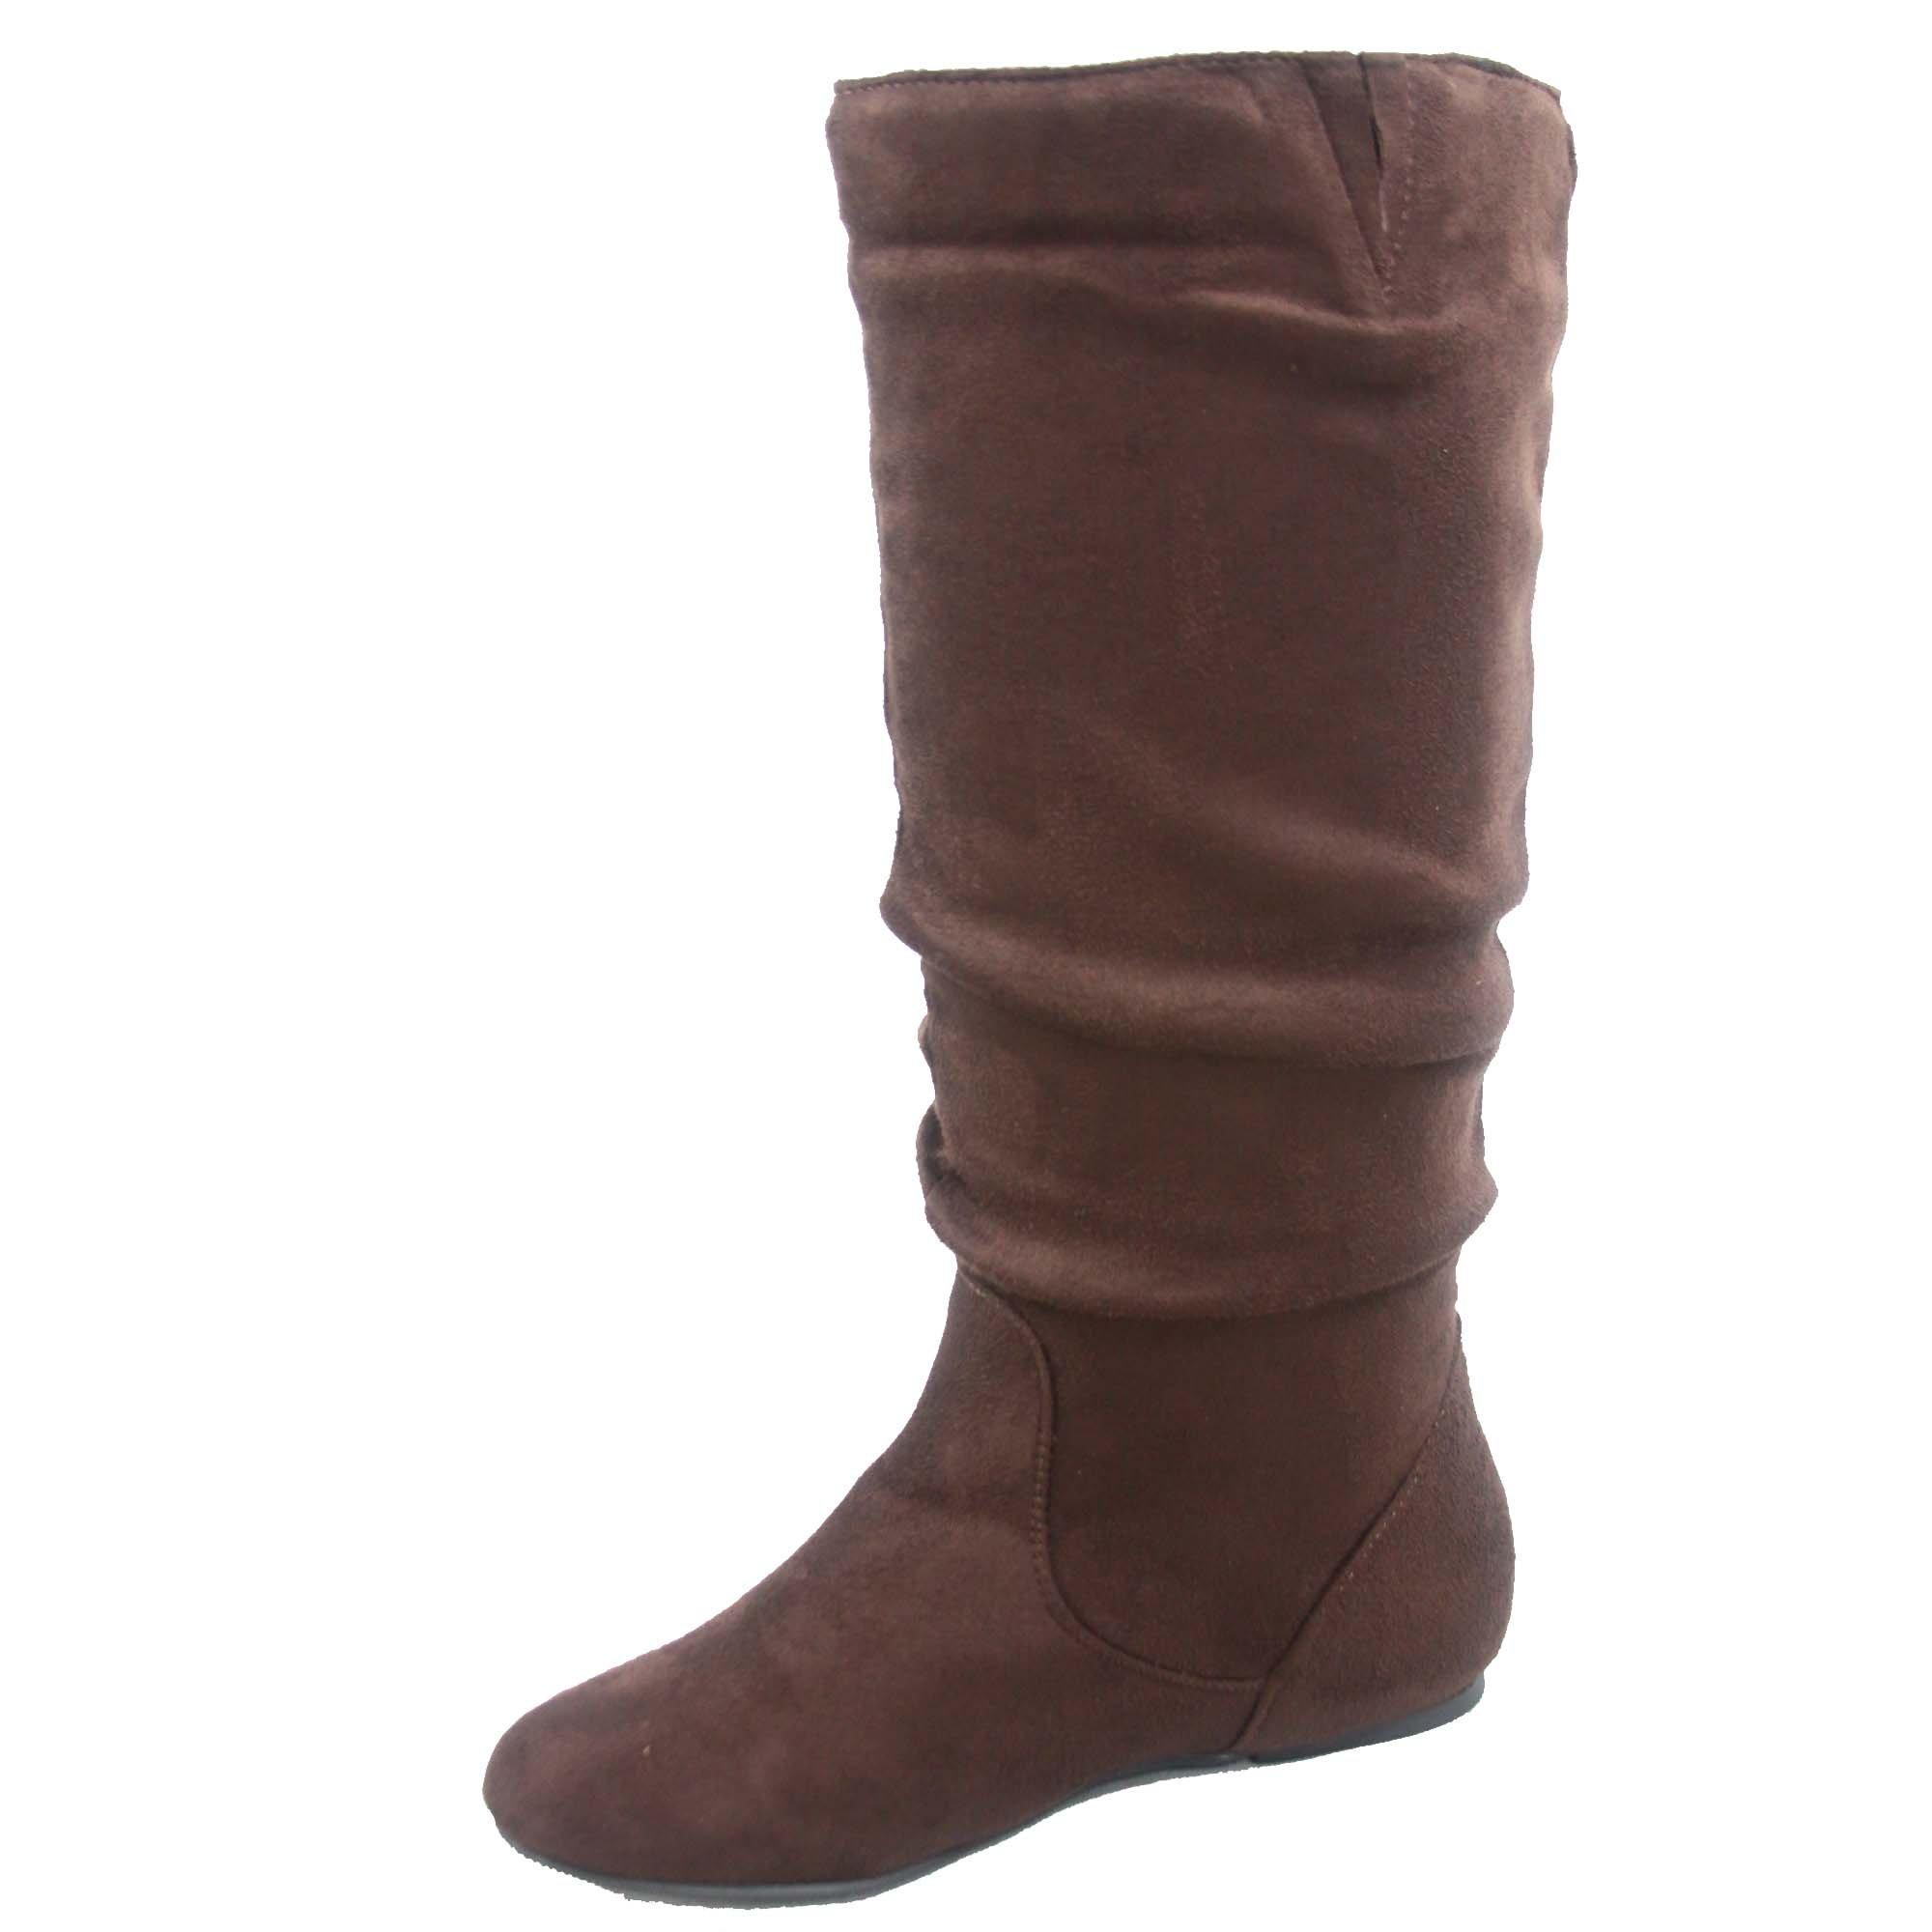 Top Moda Data-1 Women's Shoes Cute & Comfort Round Toe Flat Heel Slouchy Mid Calf Boot (8.5, Brown) by Top Moda (Image #3)